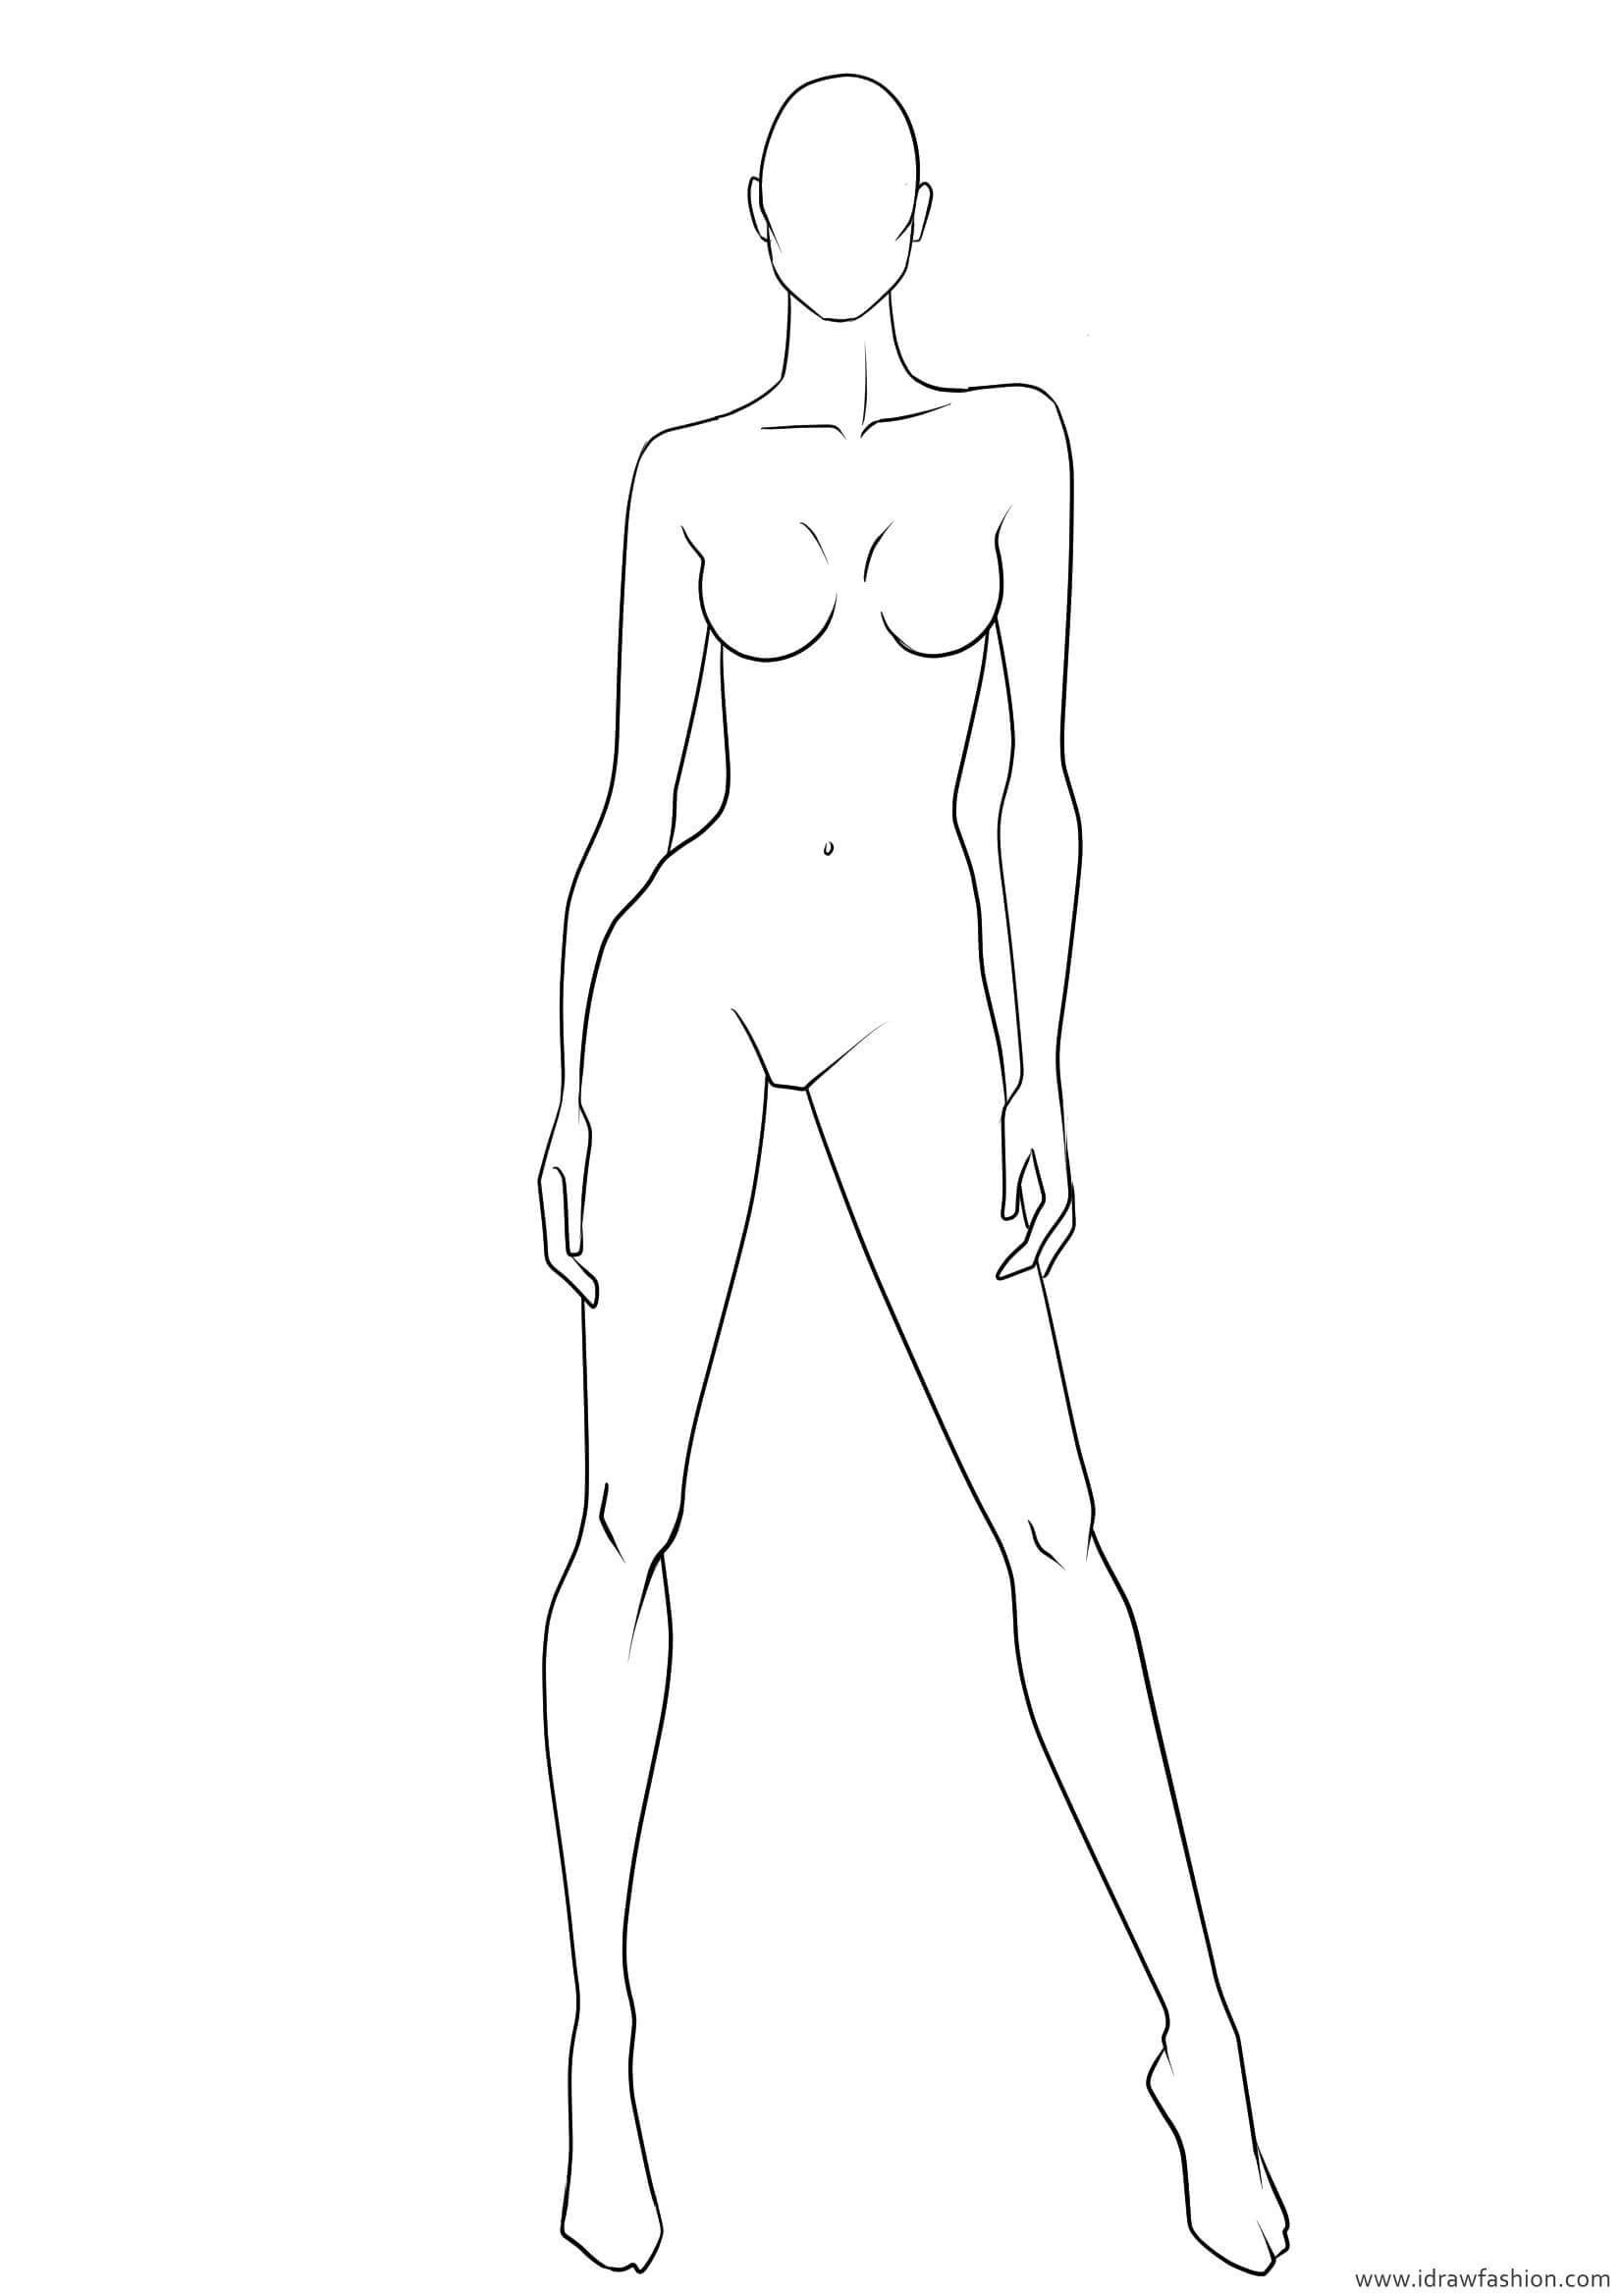 Blank Body Sketch At Paintingvalley | Explore Collection Of - Free Printable Fashion Model Templates